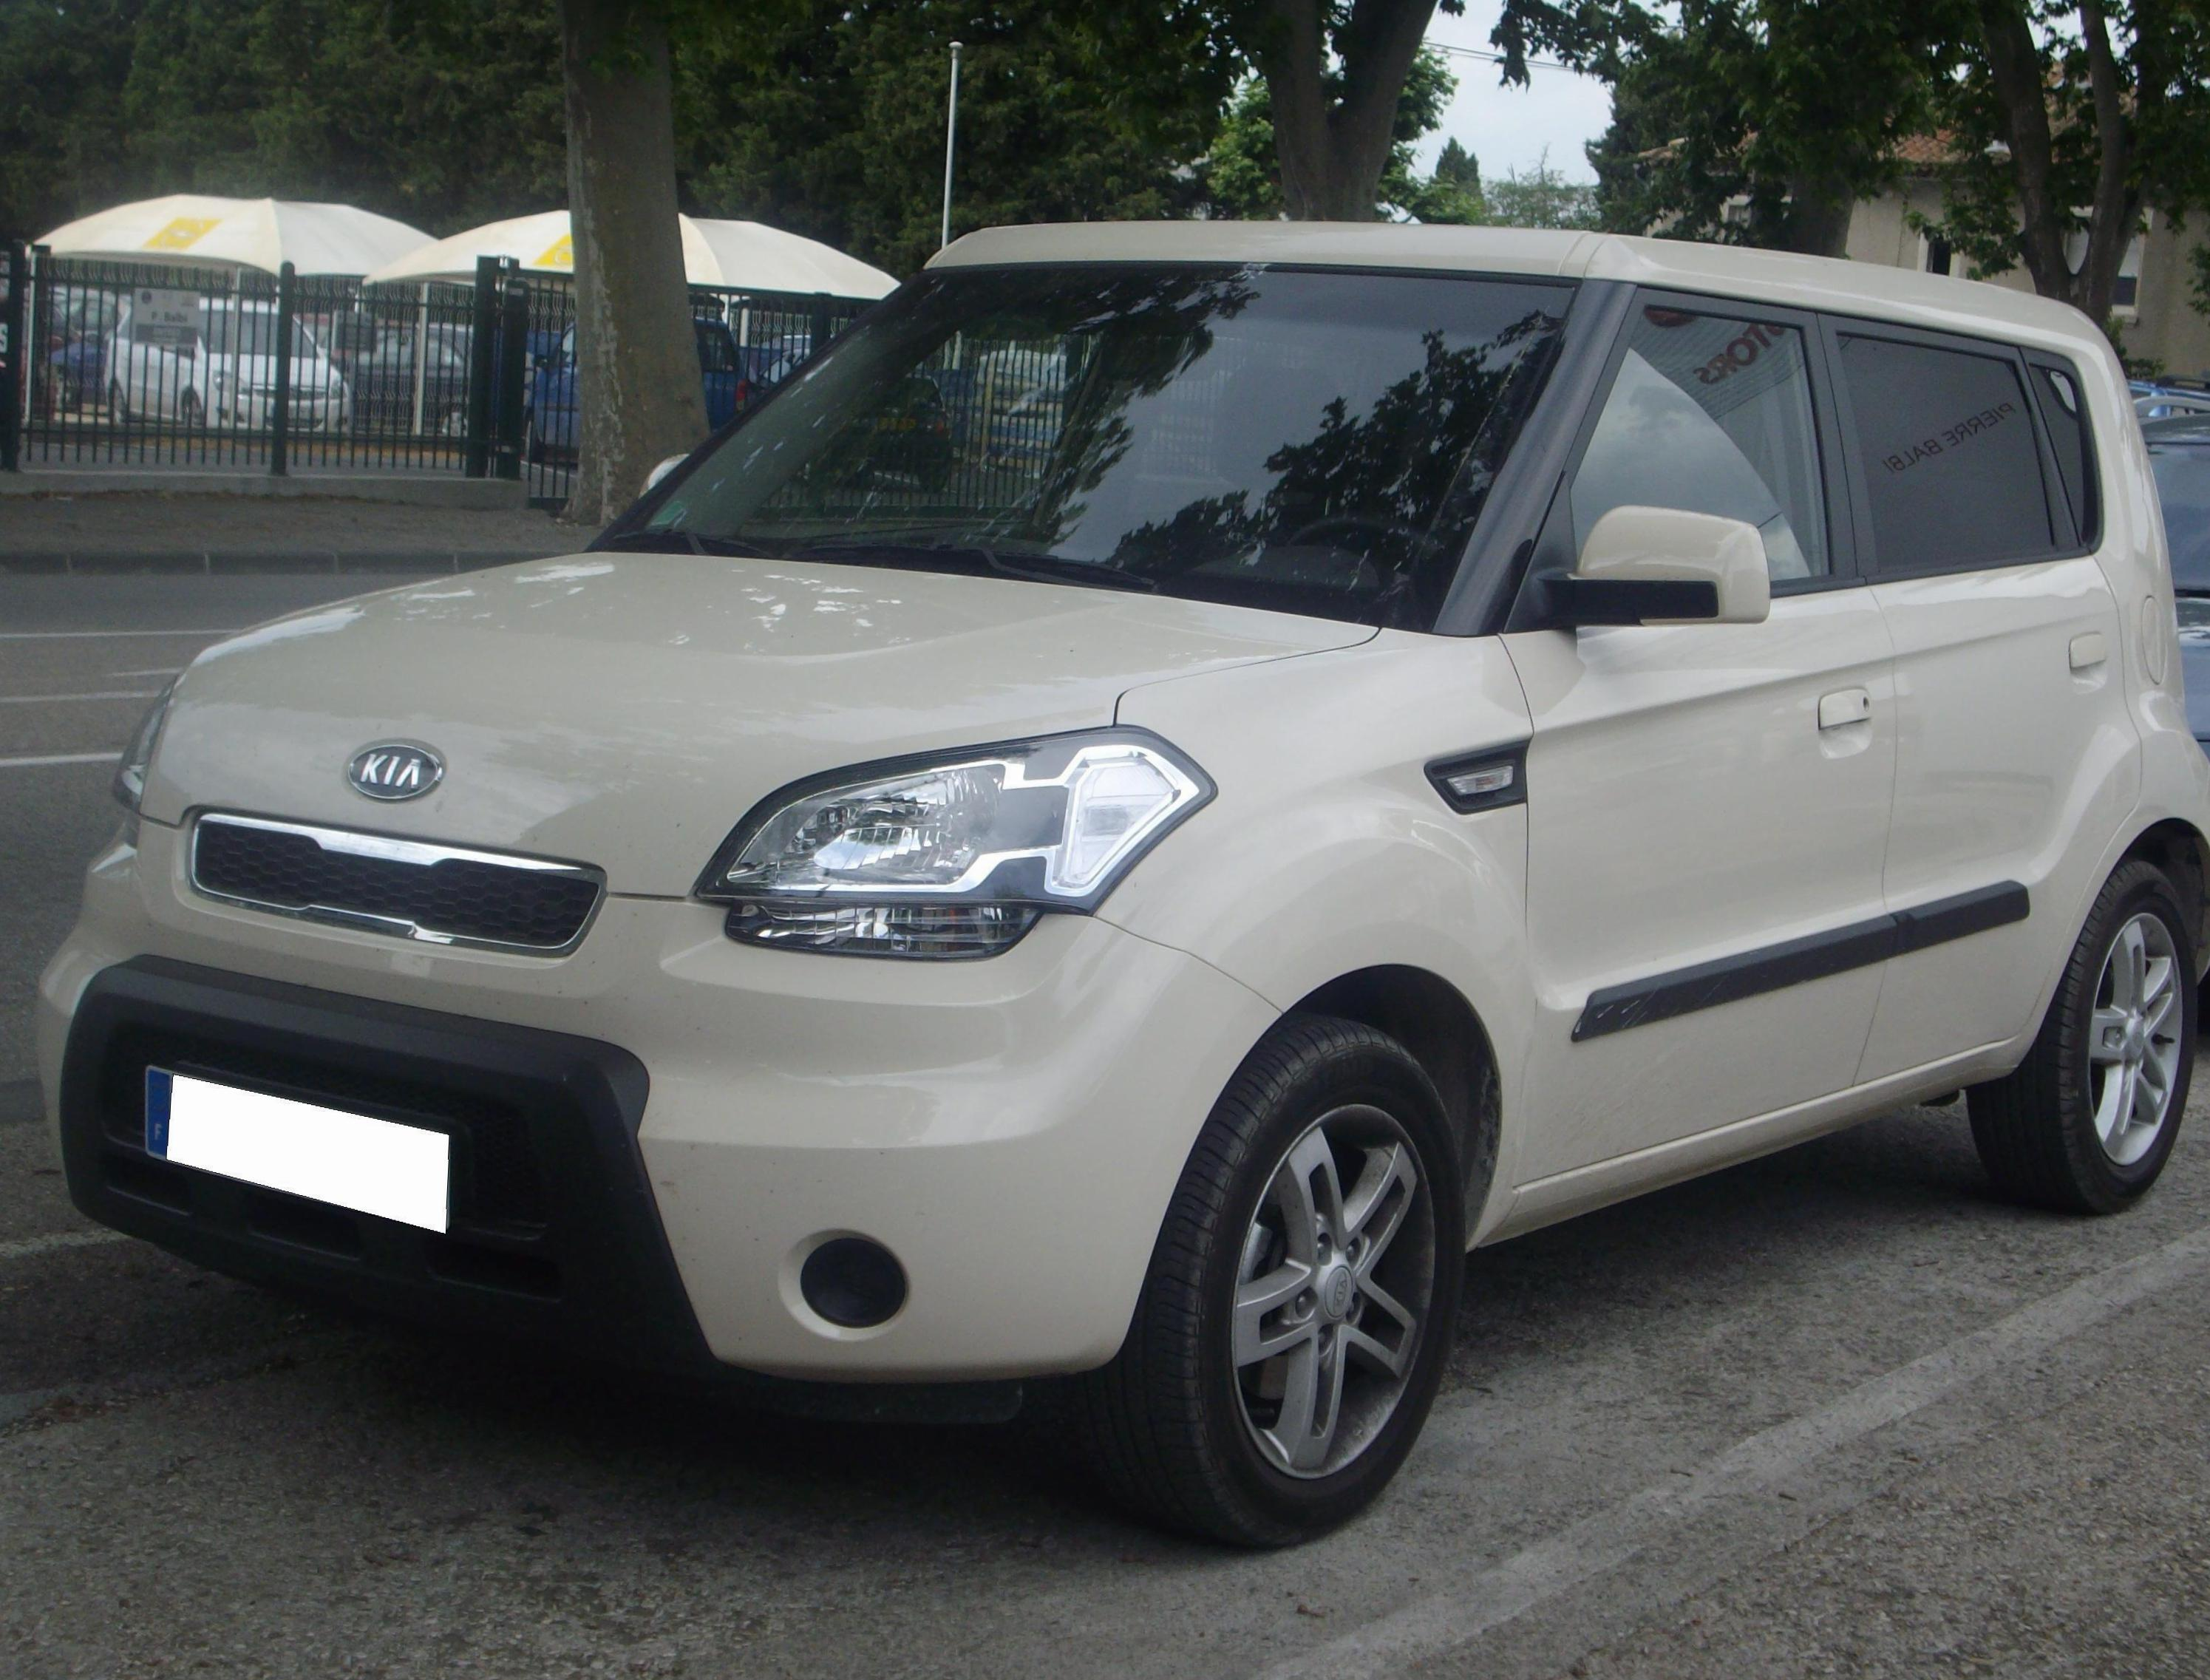 Soul KIA Specification 2009